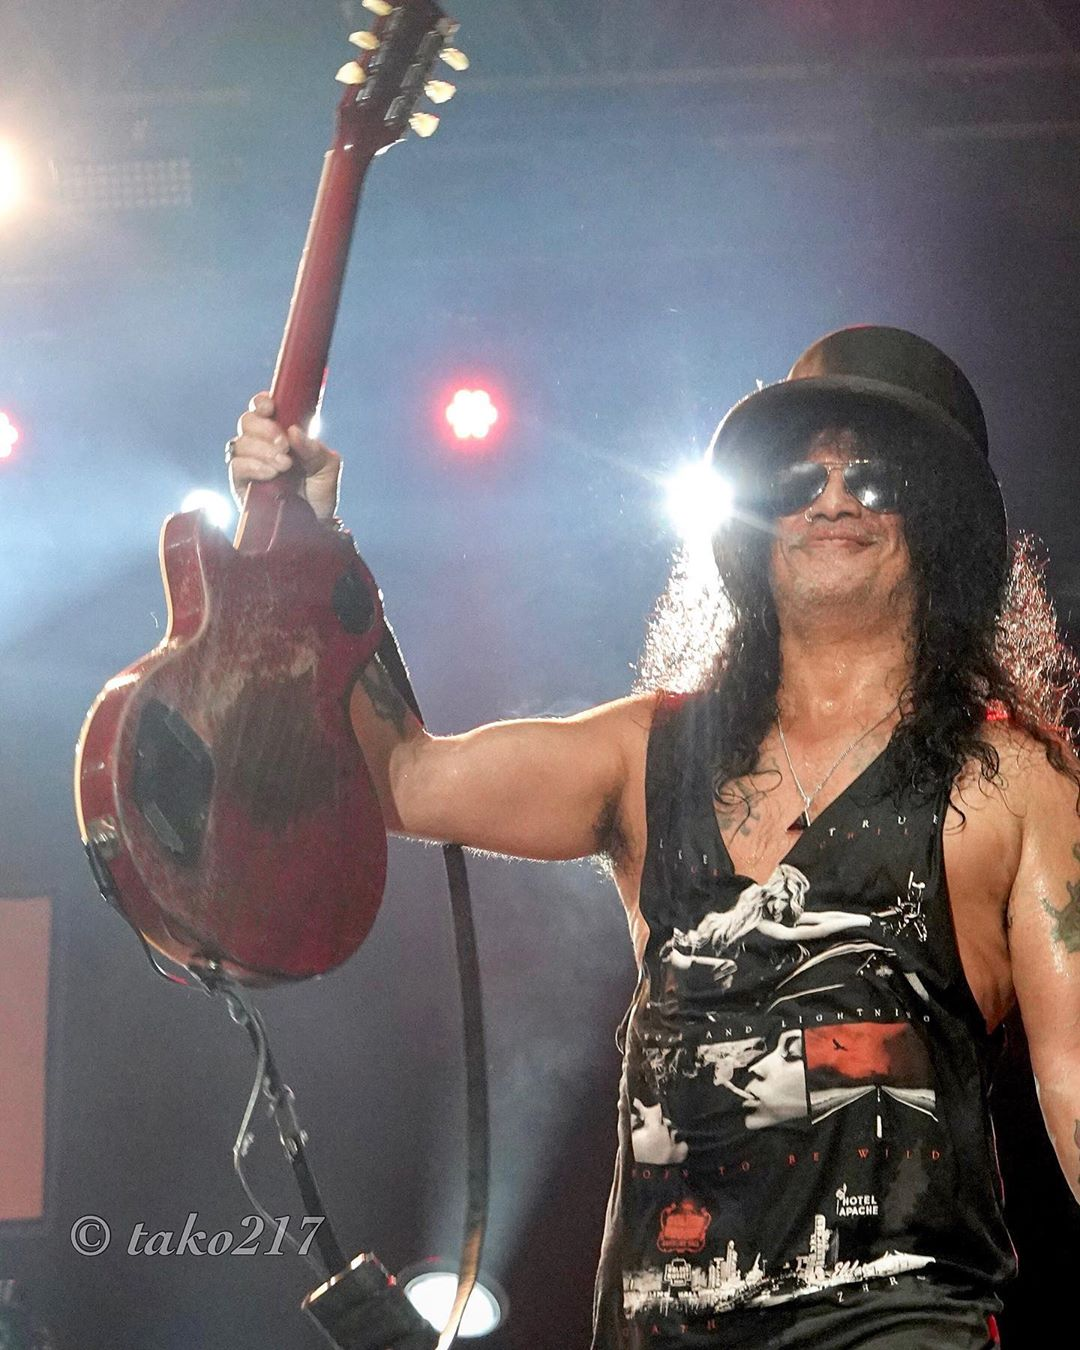 slash france brasilia opera hall living the dream smkc kerns kennedy fitz 2019 brasil